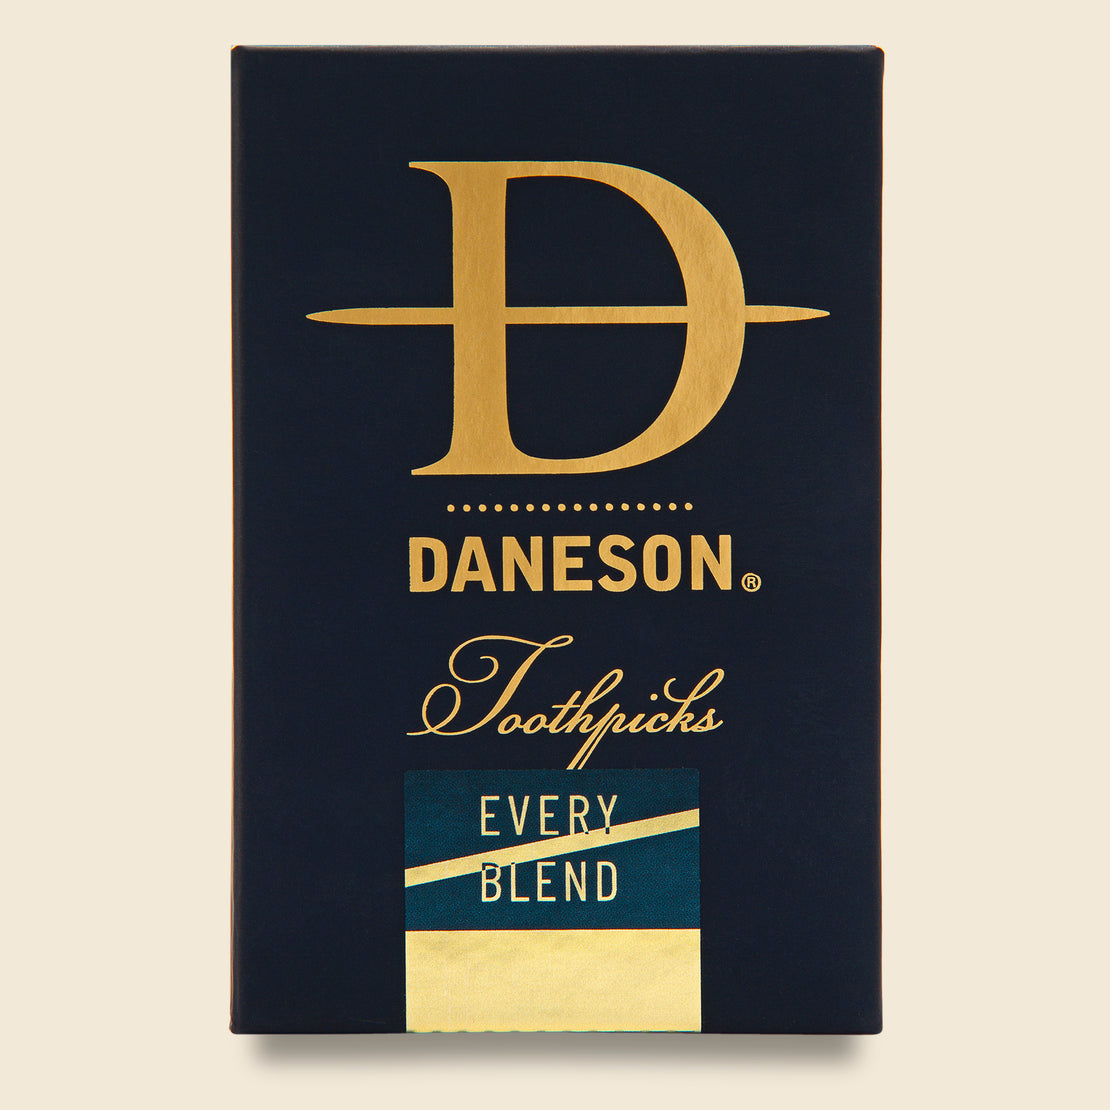 Daneson Four-Pack Toothpicks - Every Blend